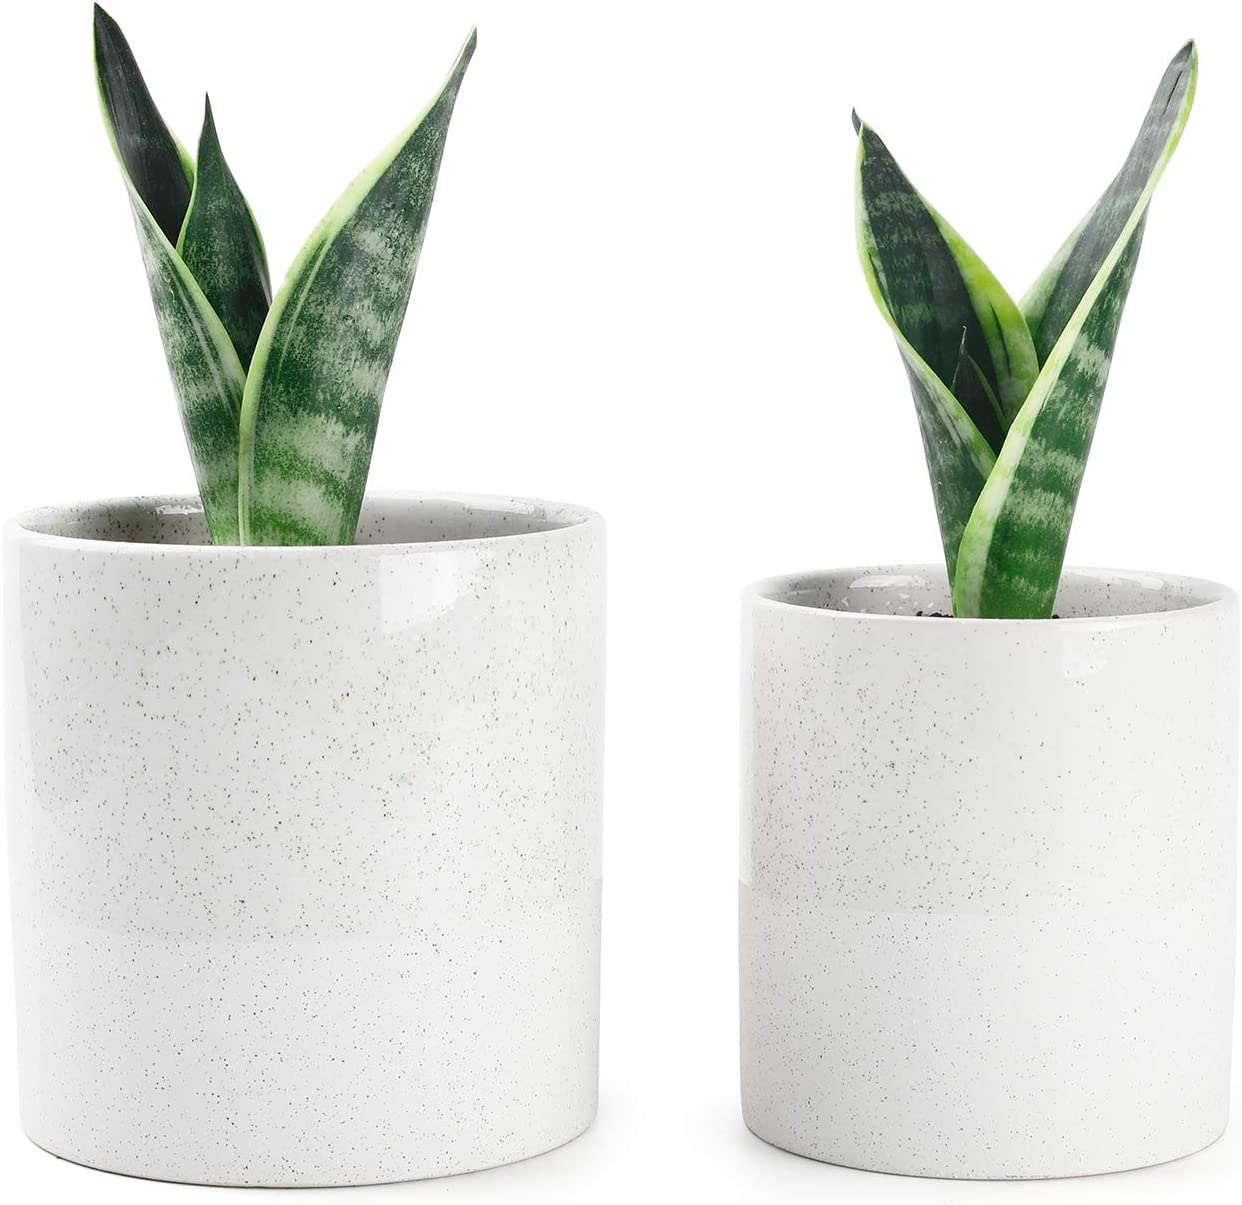 Vintage Style Beige Ceramic Pots - 5.9 and 4.7 Inch Half Glazed Planters with Drainage Holes for Indoor or Outdoor Flowers, Set of 2